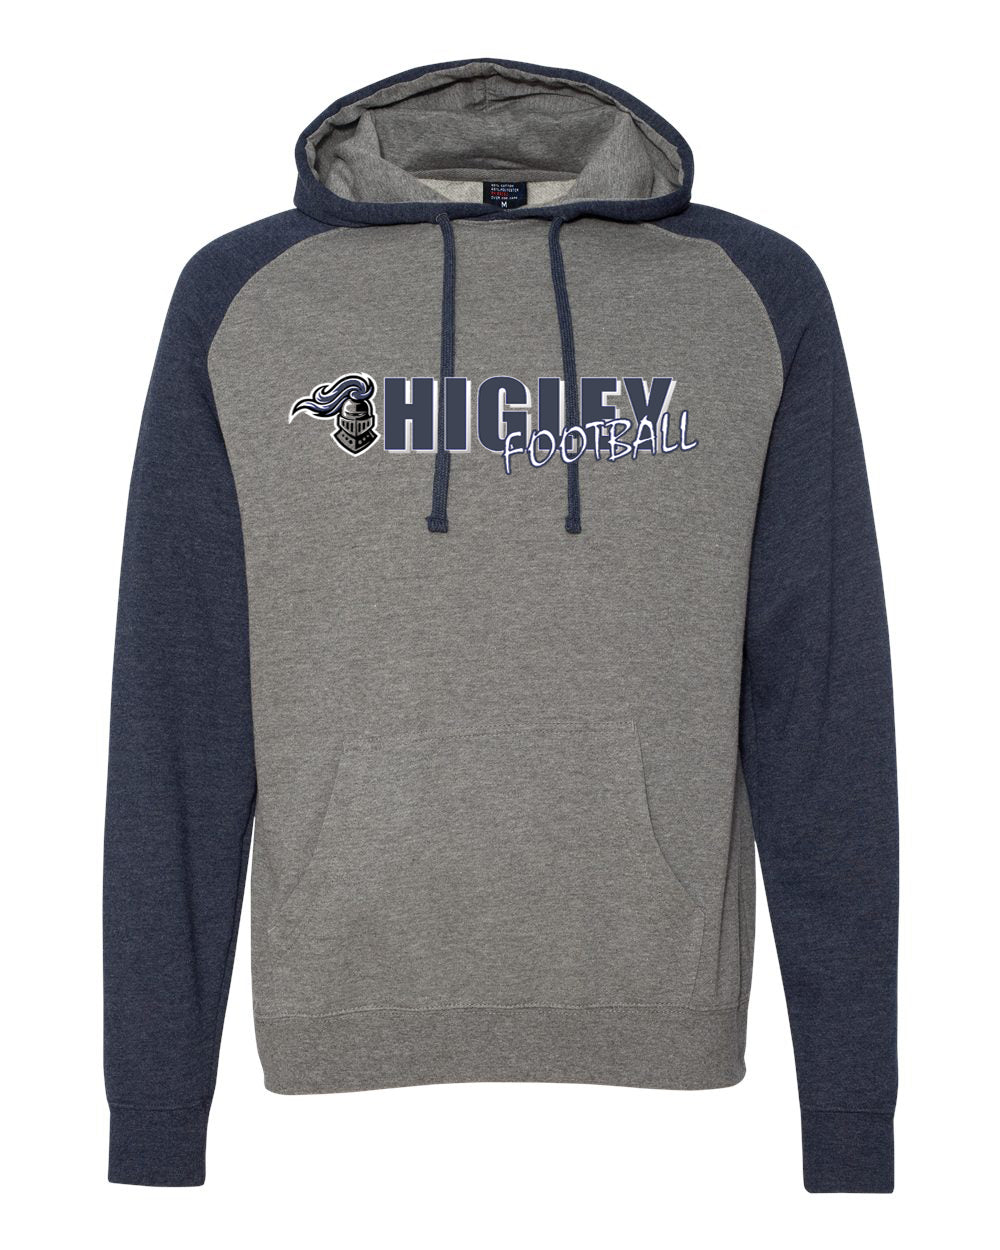 higley knights mens hoodie with player name on sleeve